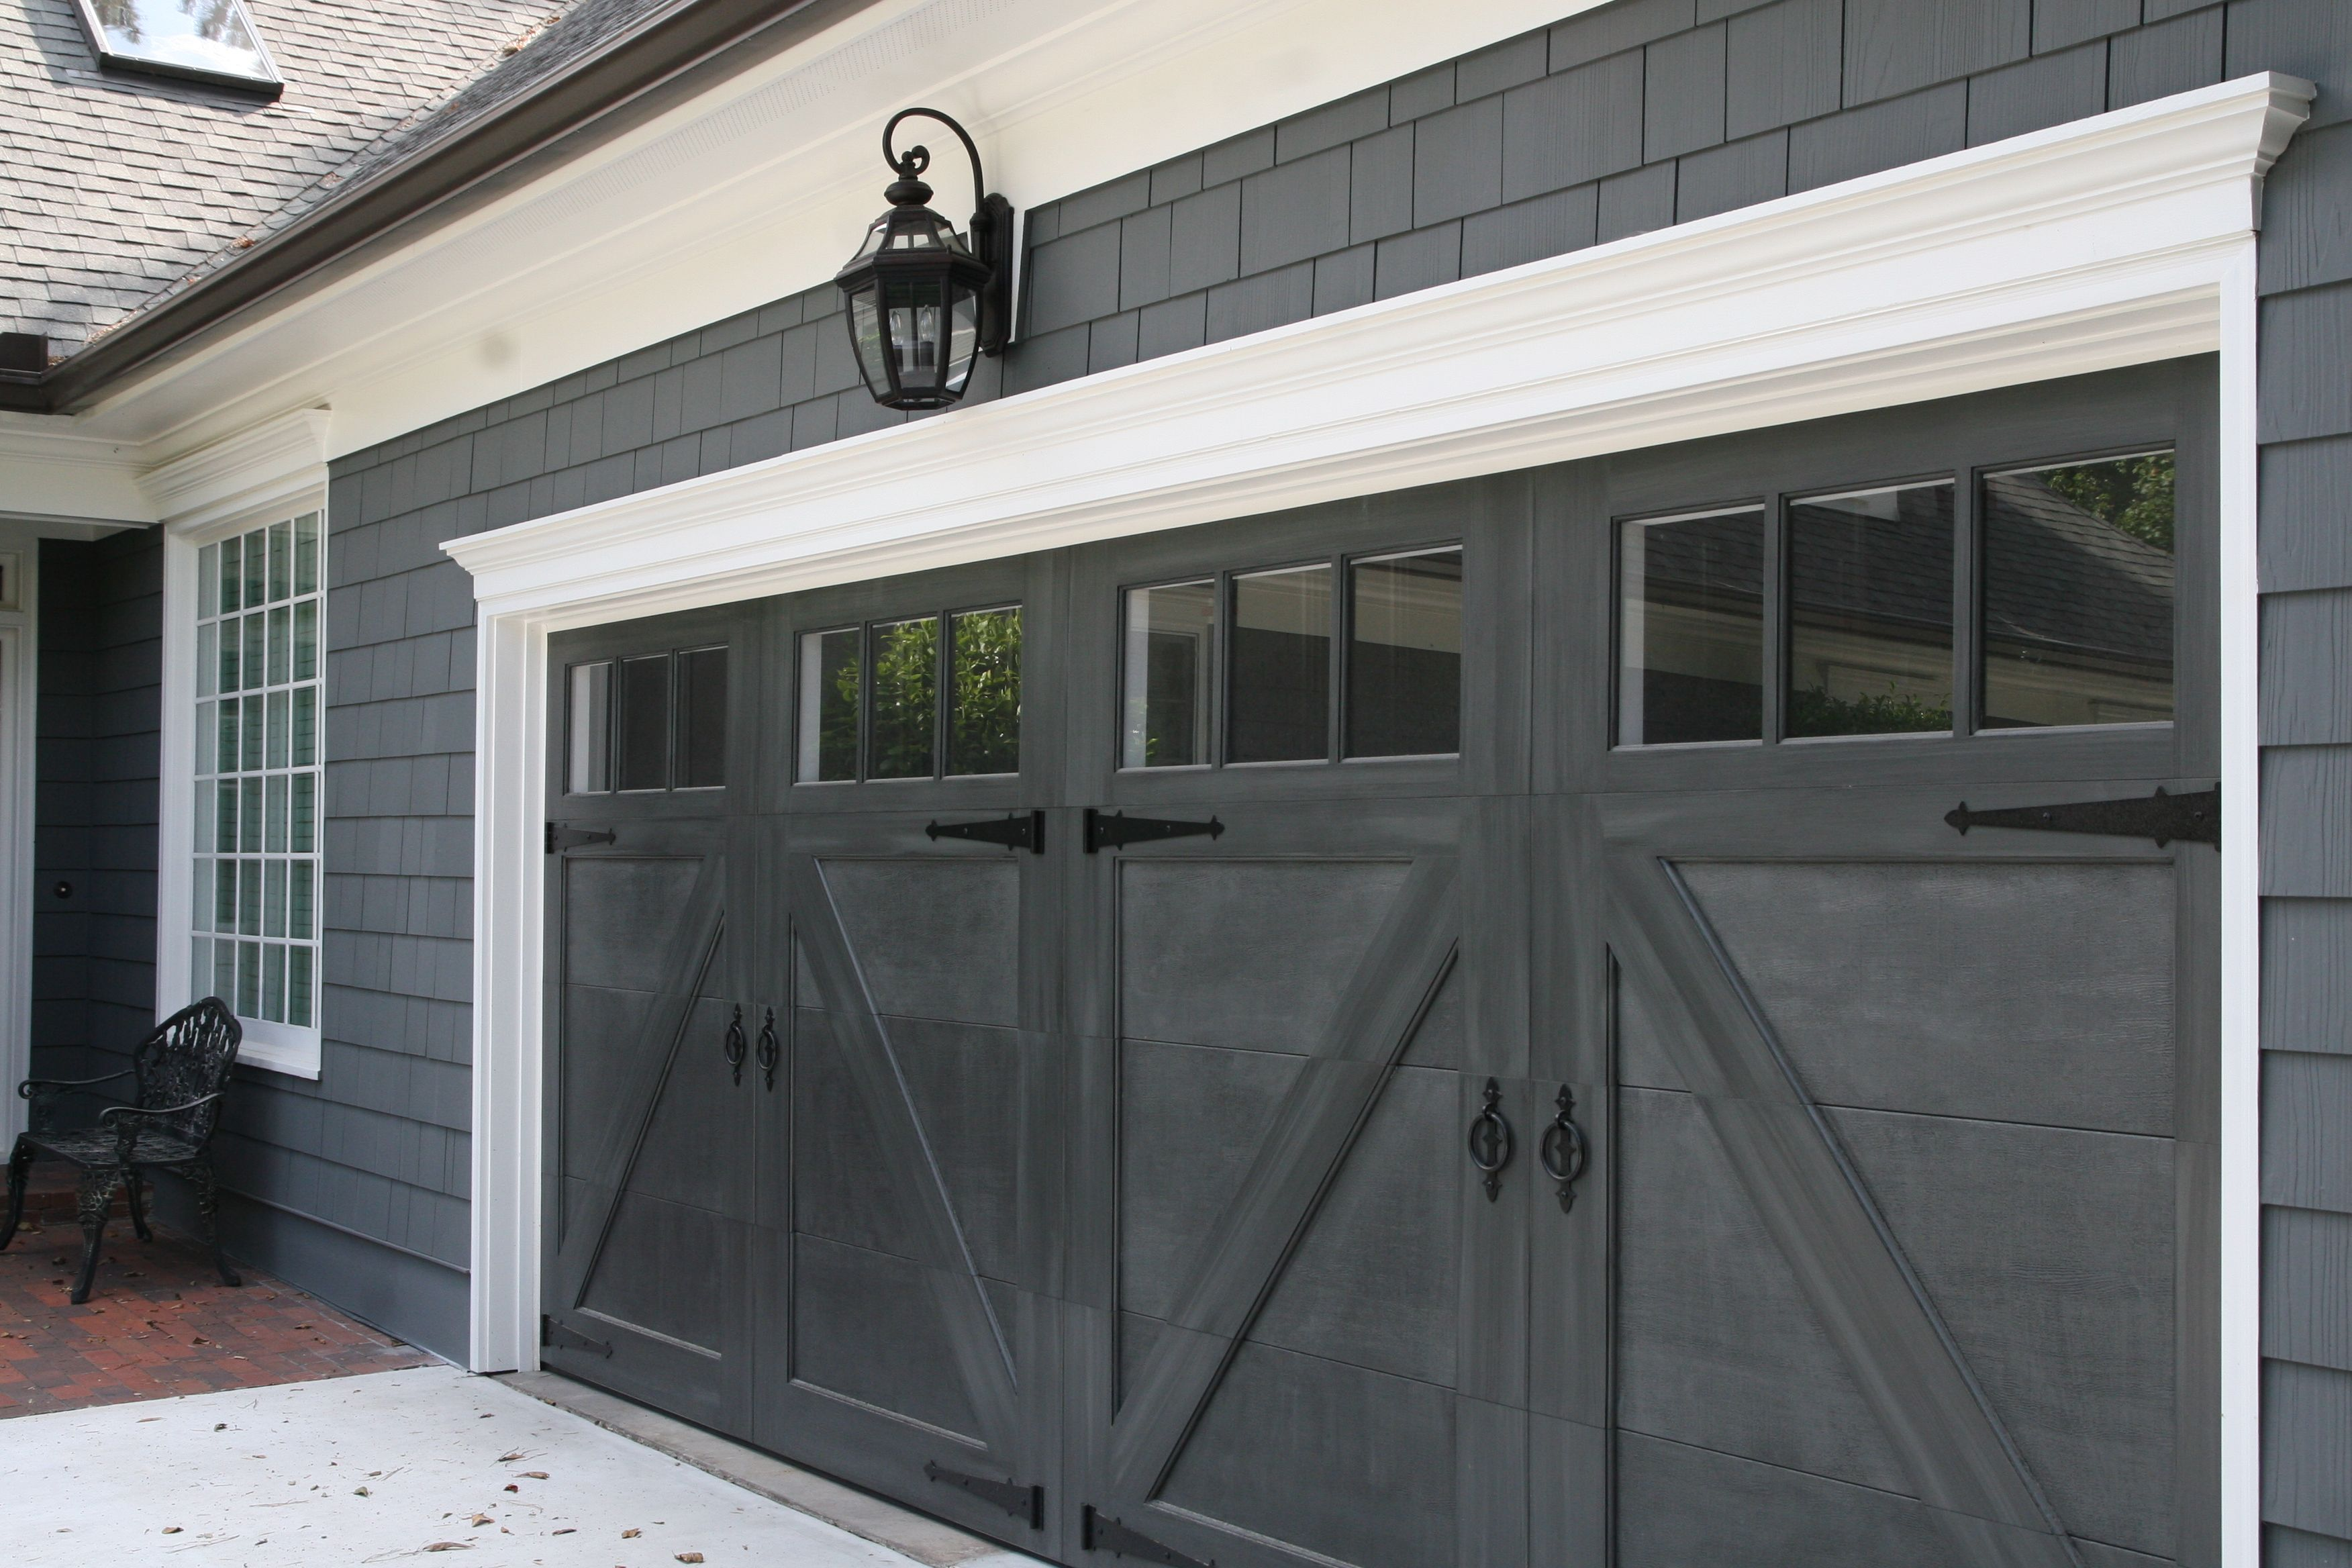 trim garage garages org duper matador insulation homedepot super handballtunisie home depot door l